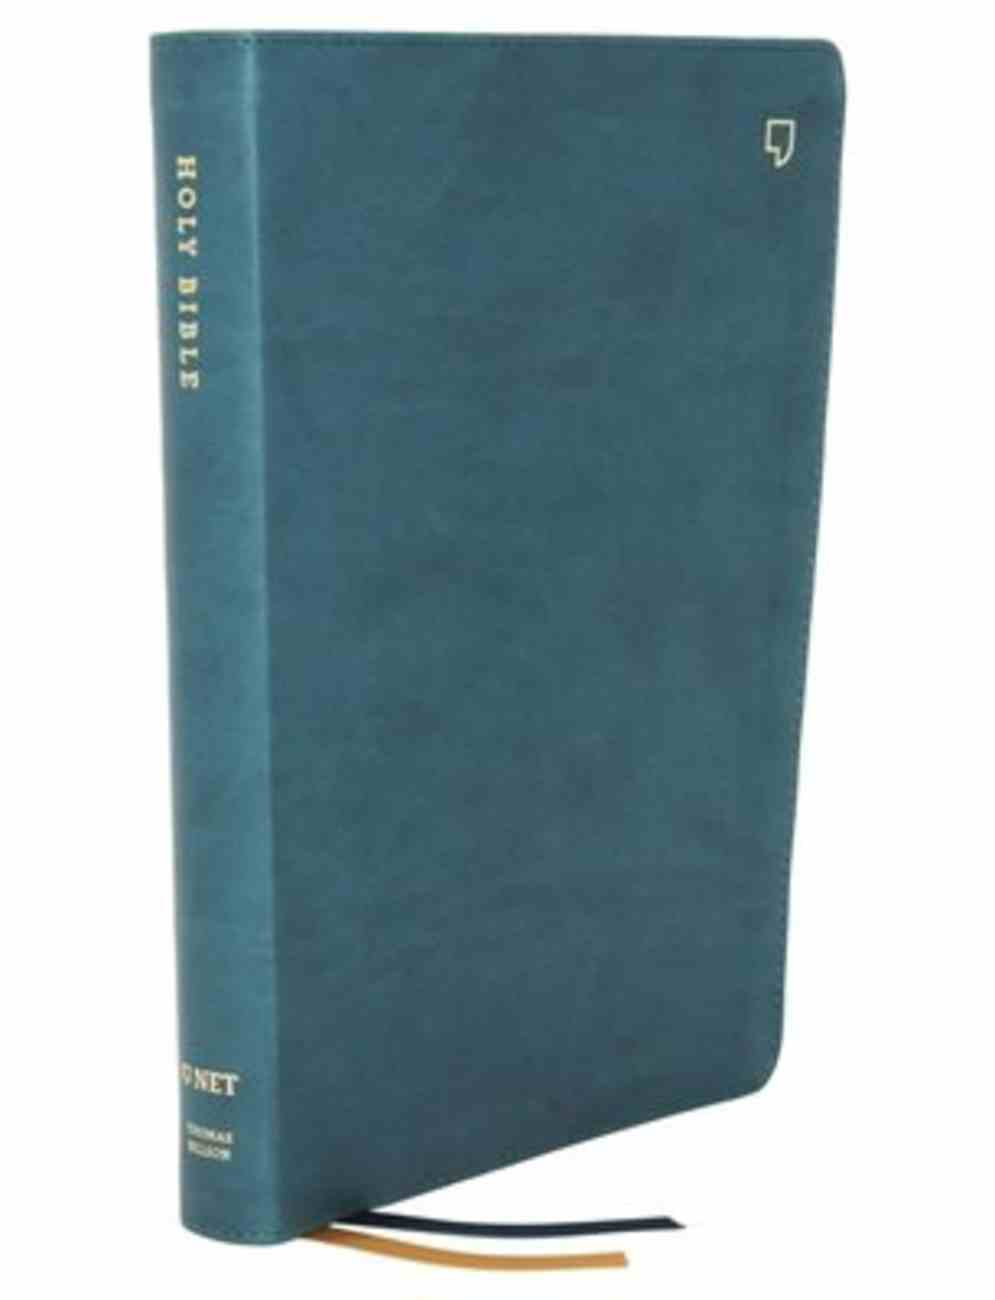 NET Bible Thinline Large Print Teal Indexed Premium Imitation Leather